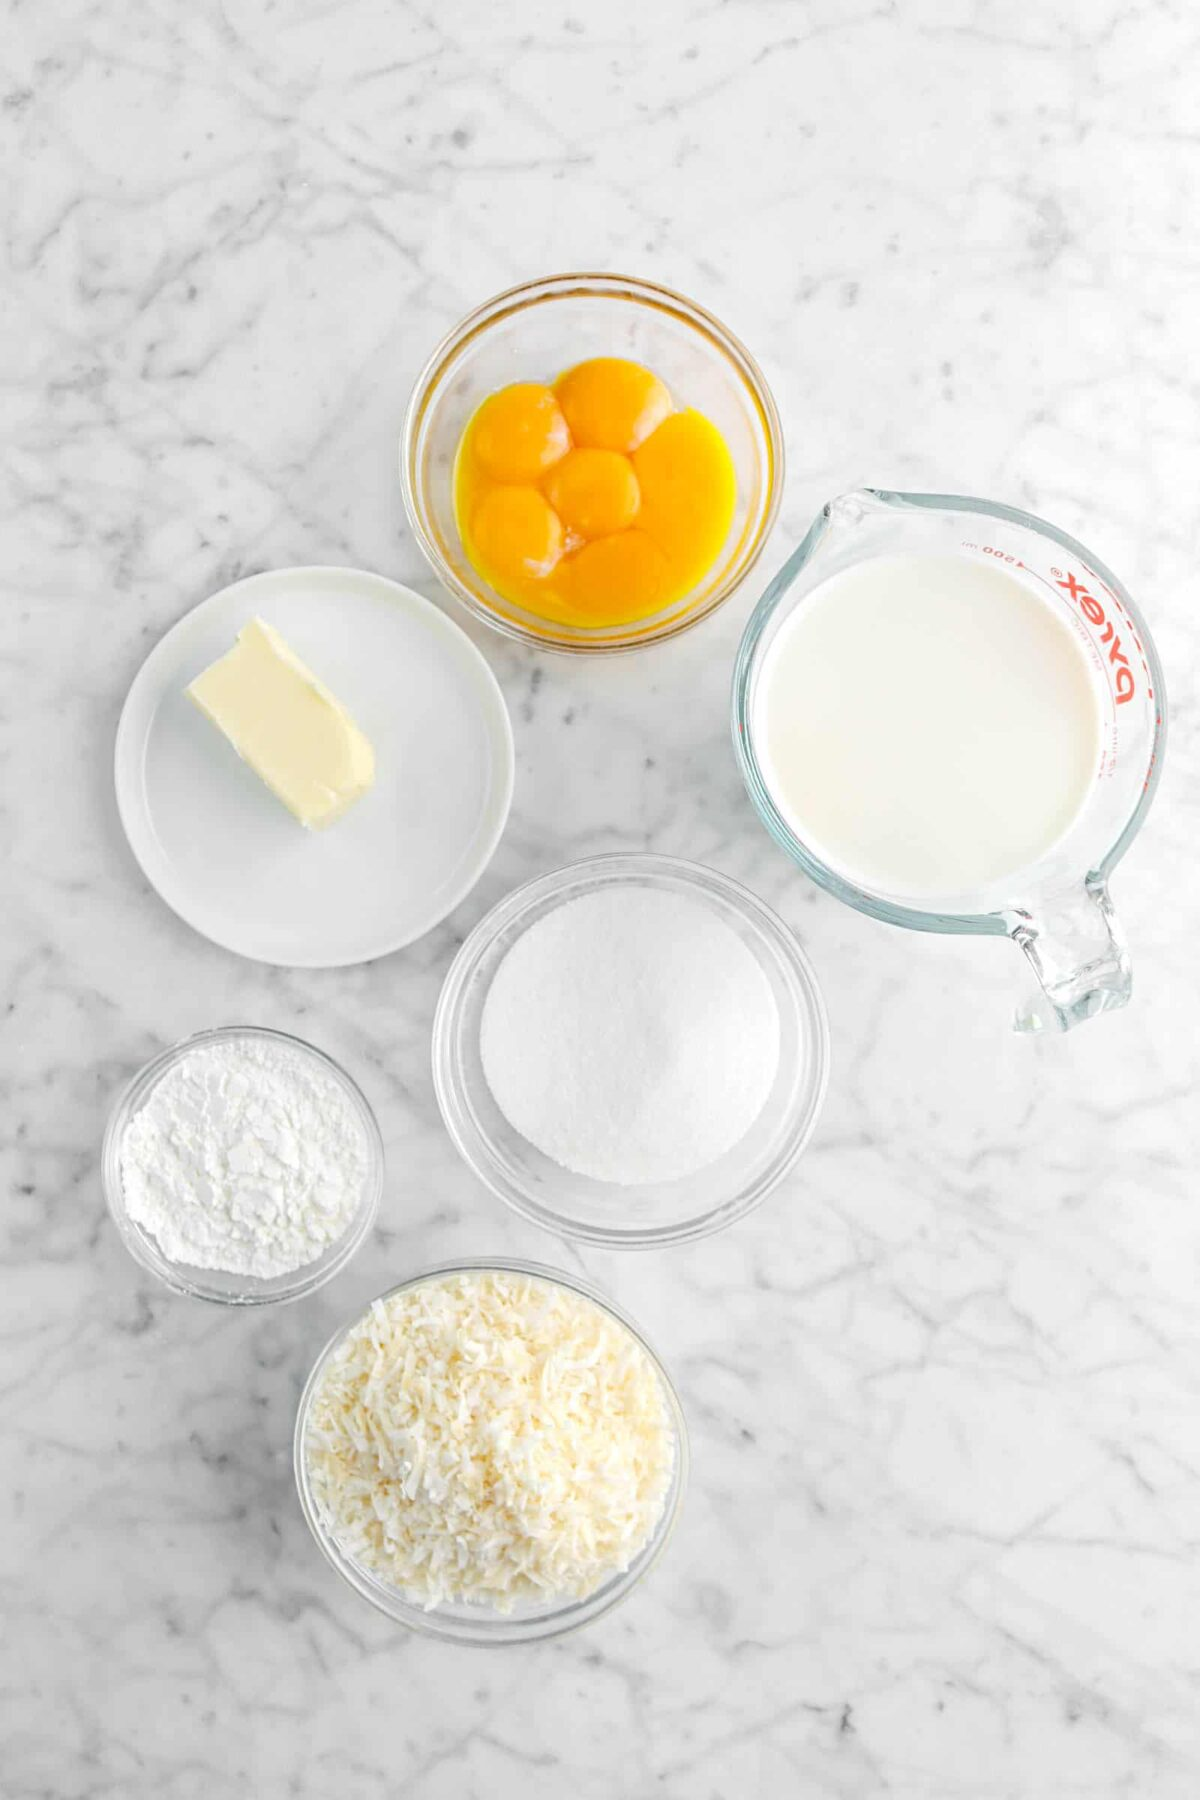 egg yolks, milk, butter, sugar, corn starch, and shredded coconut on marble counter